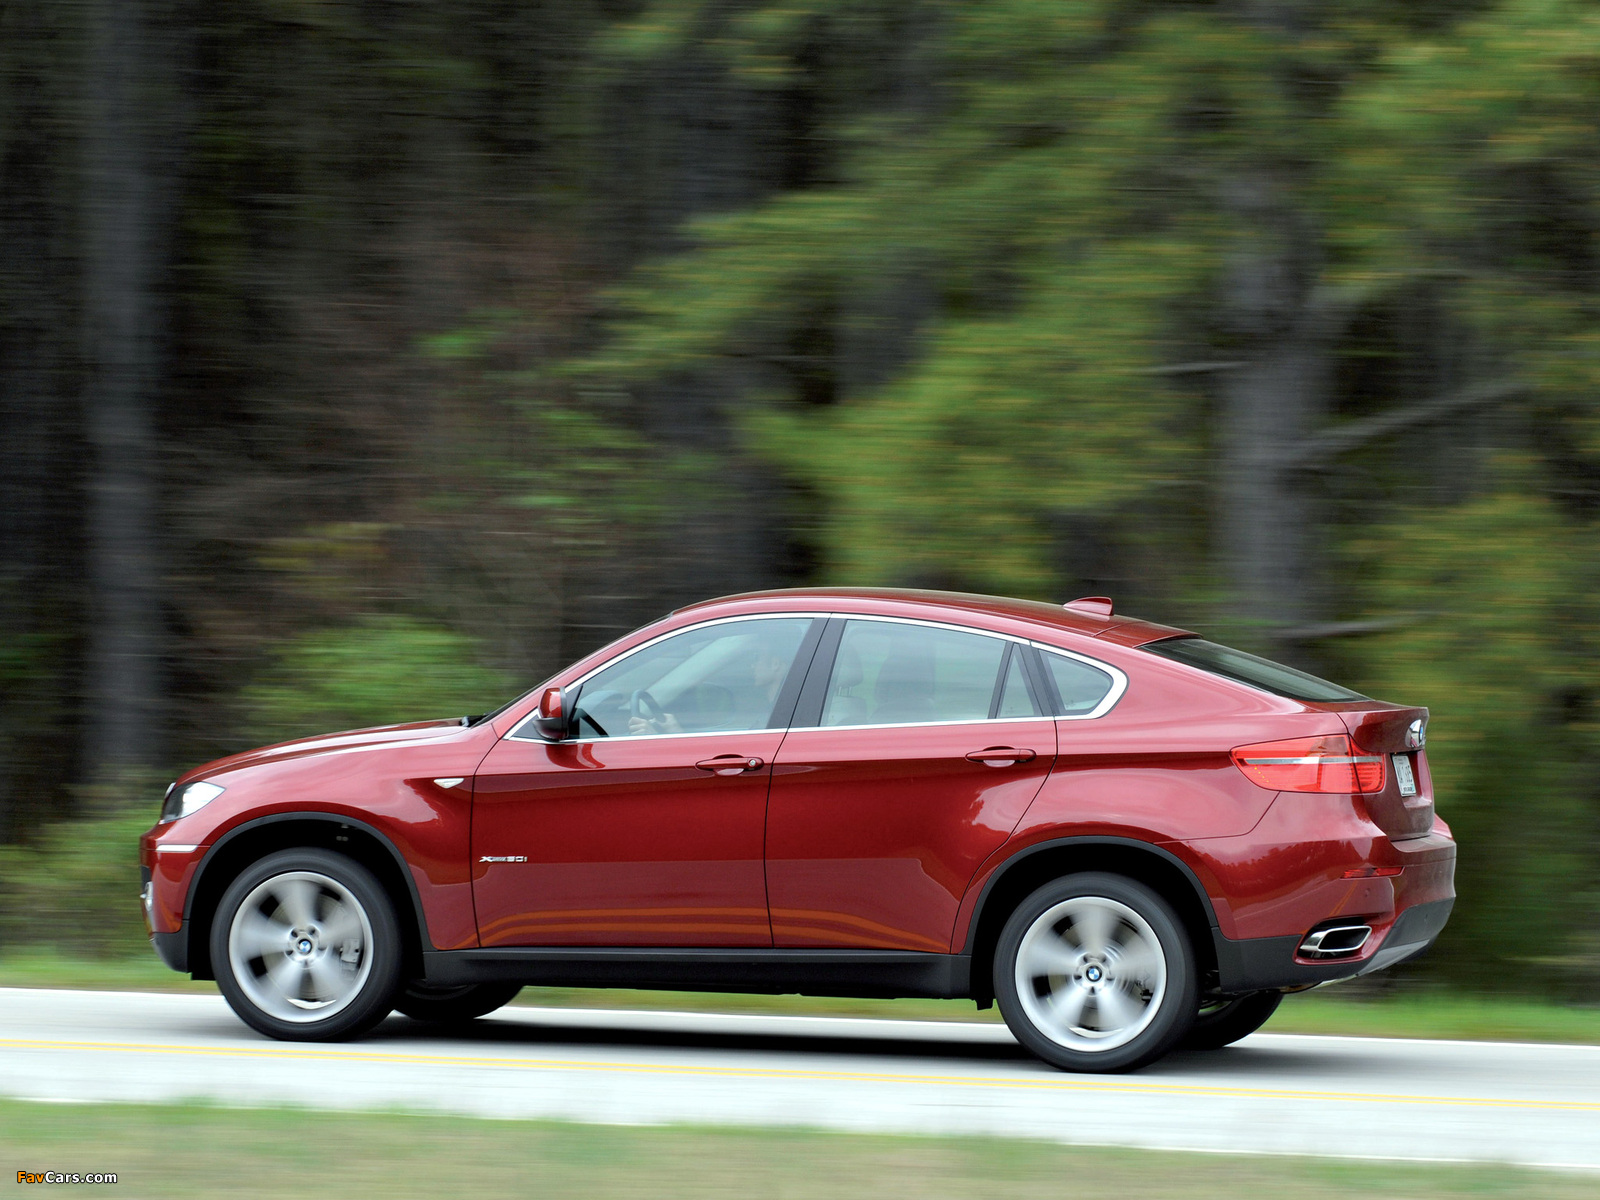 Images Of Bmw X6 Xdrive50i E71 2008 12 1600x1200